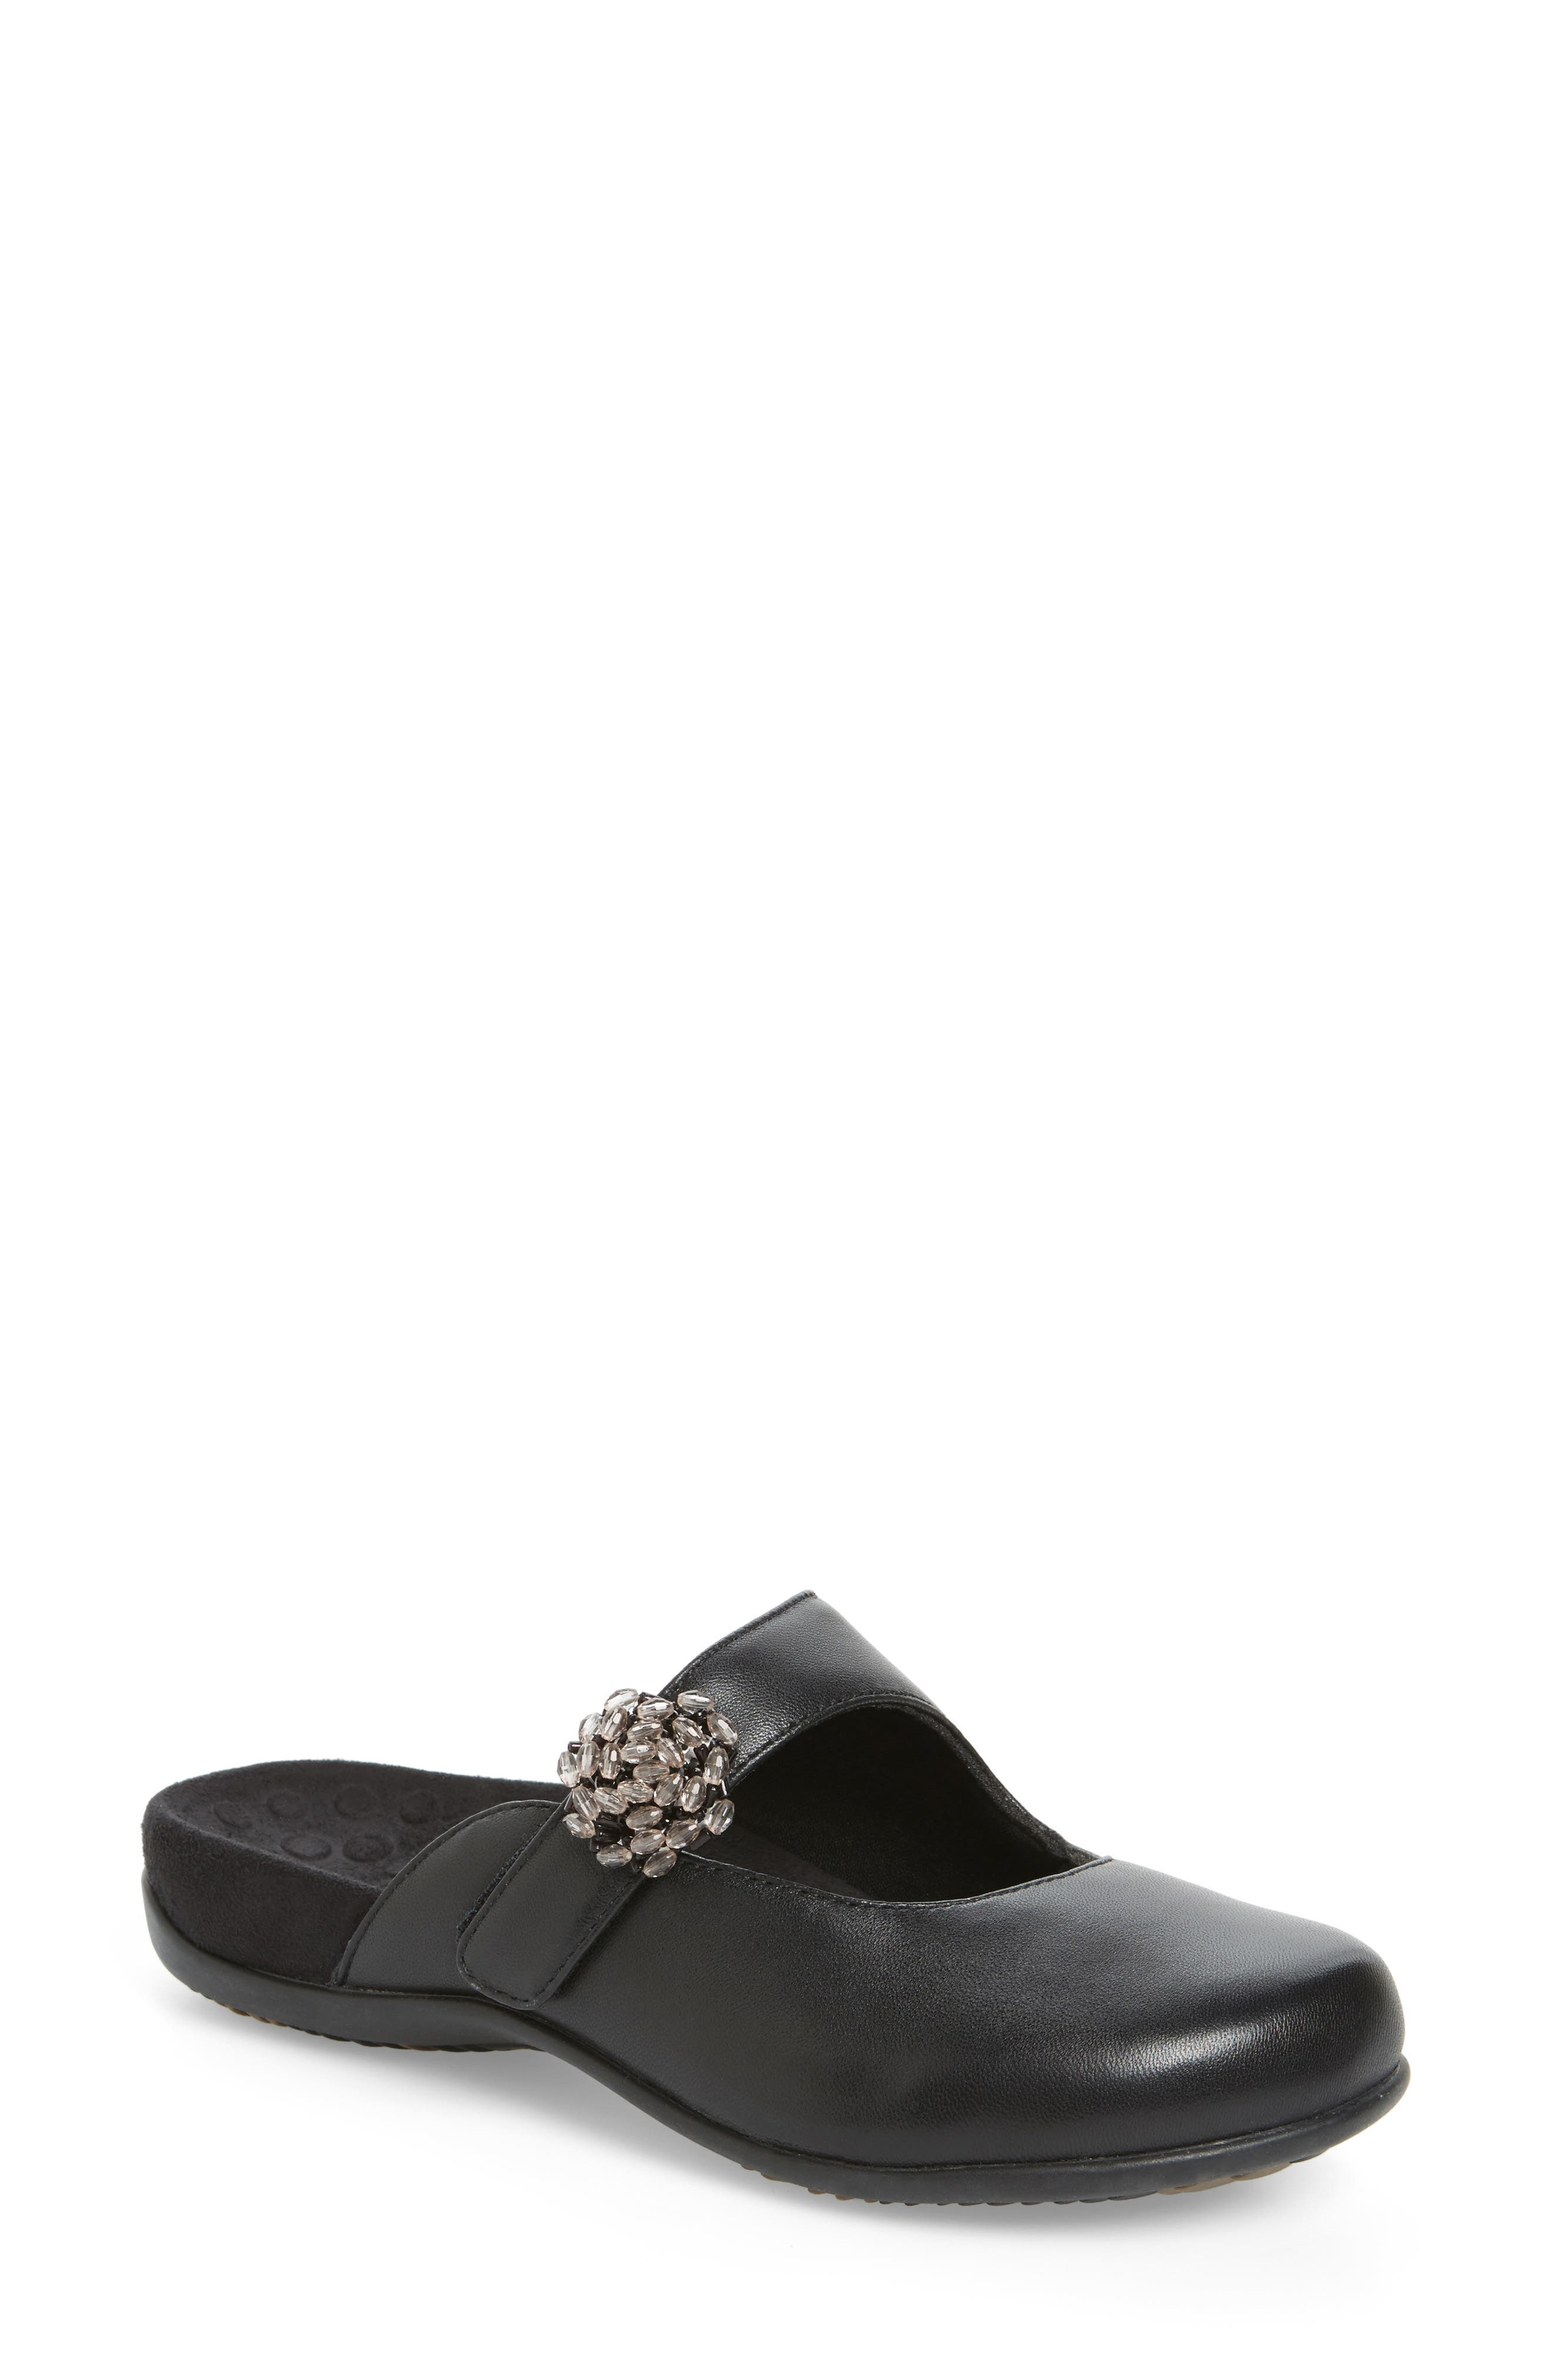 Rest Joan Mary Jane Mule,                         Main,                         color, 001